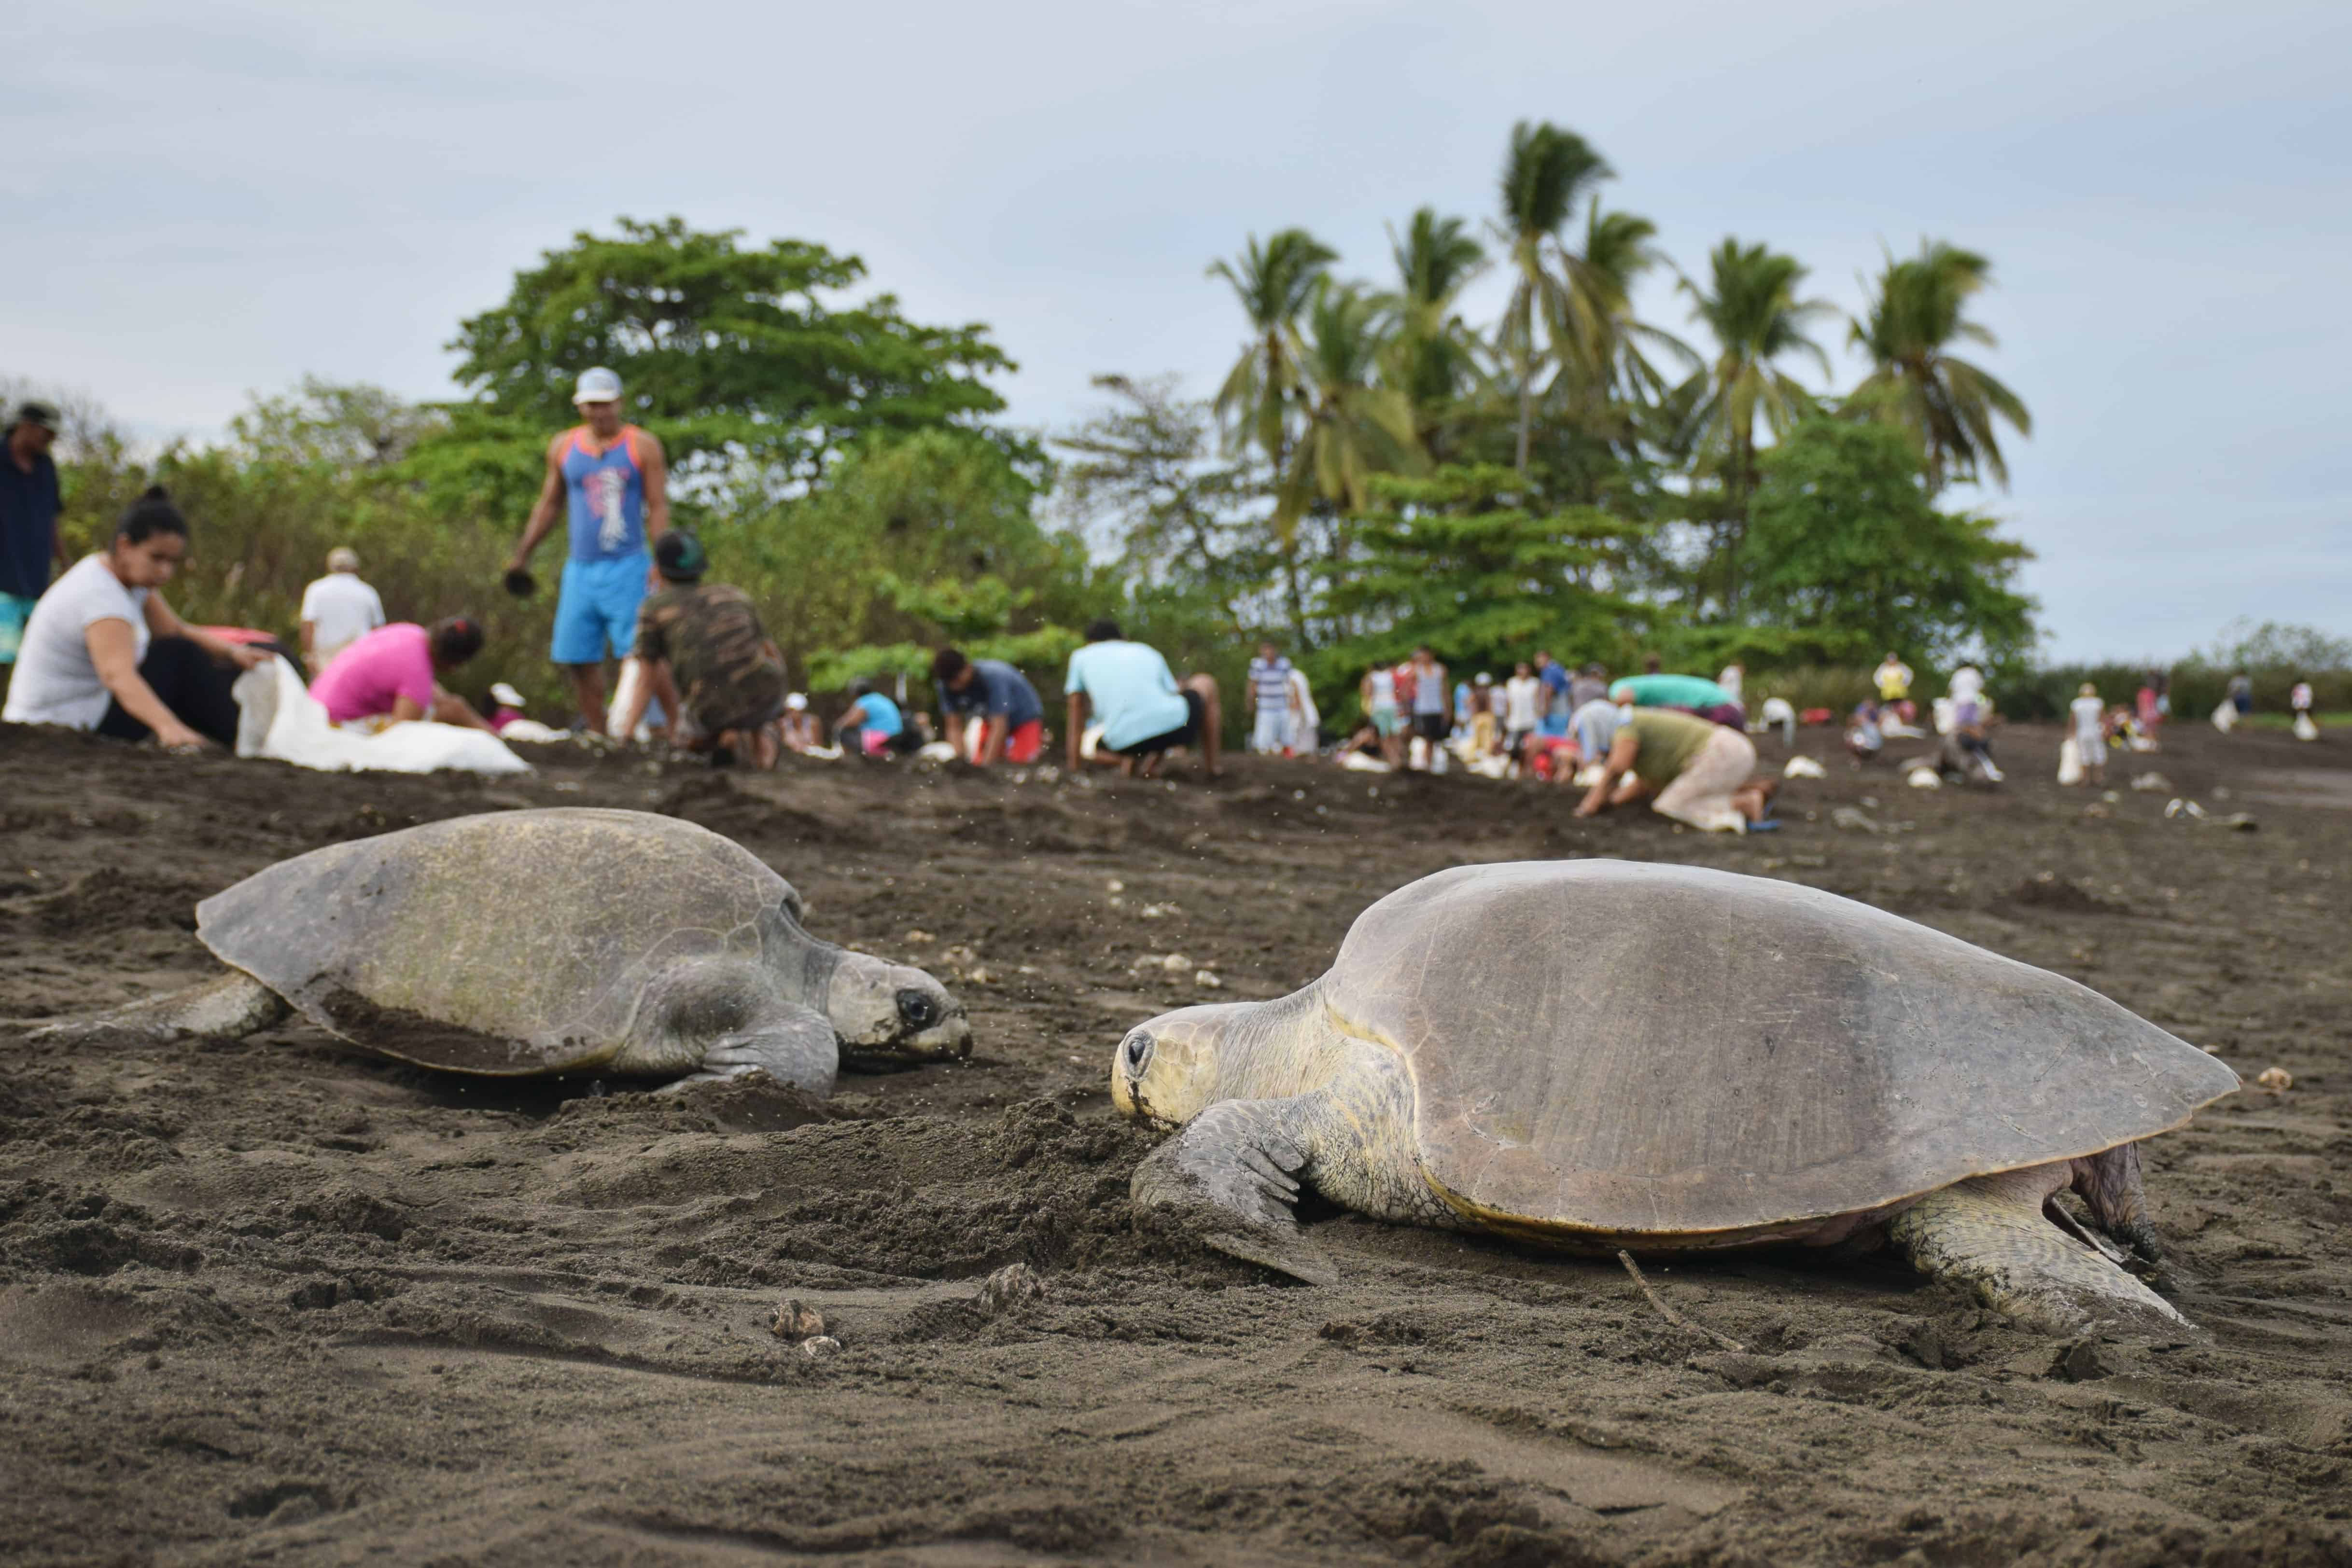 The last few turtles make their way on and off the beach at Ostional, Costa Rica.